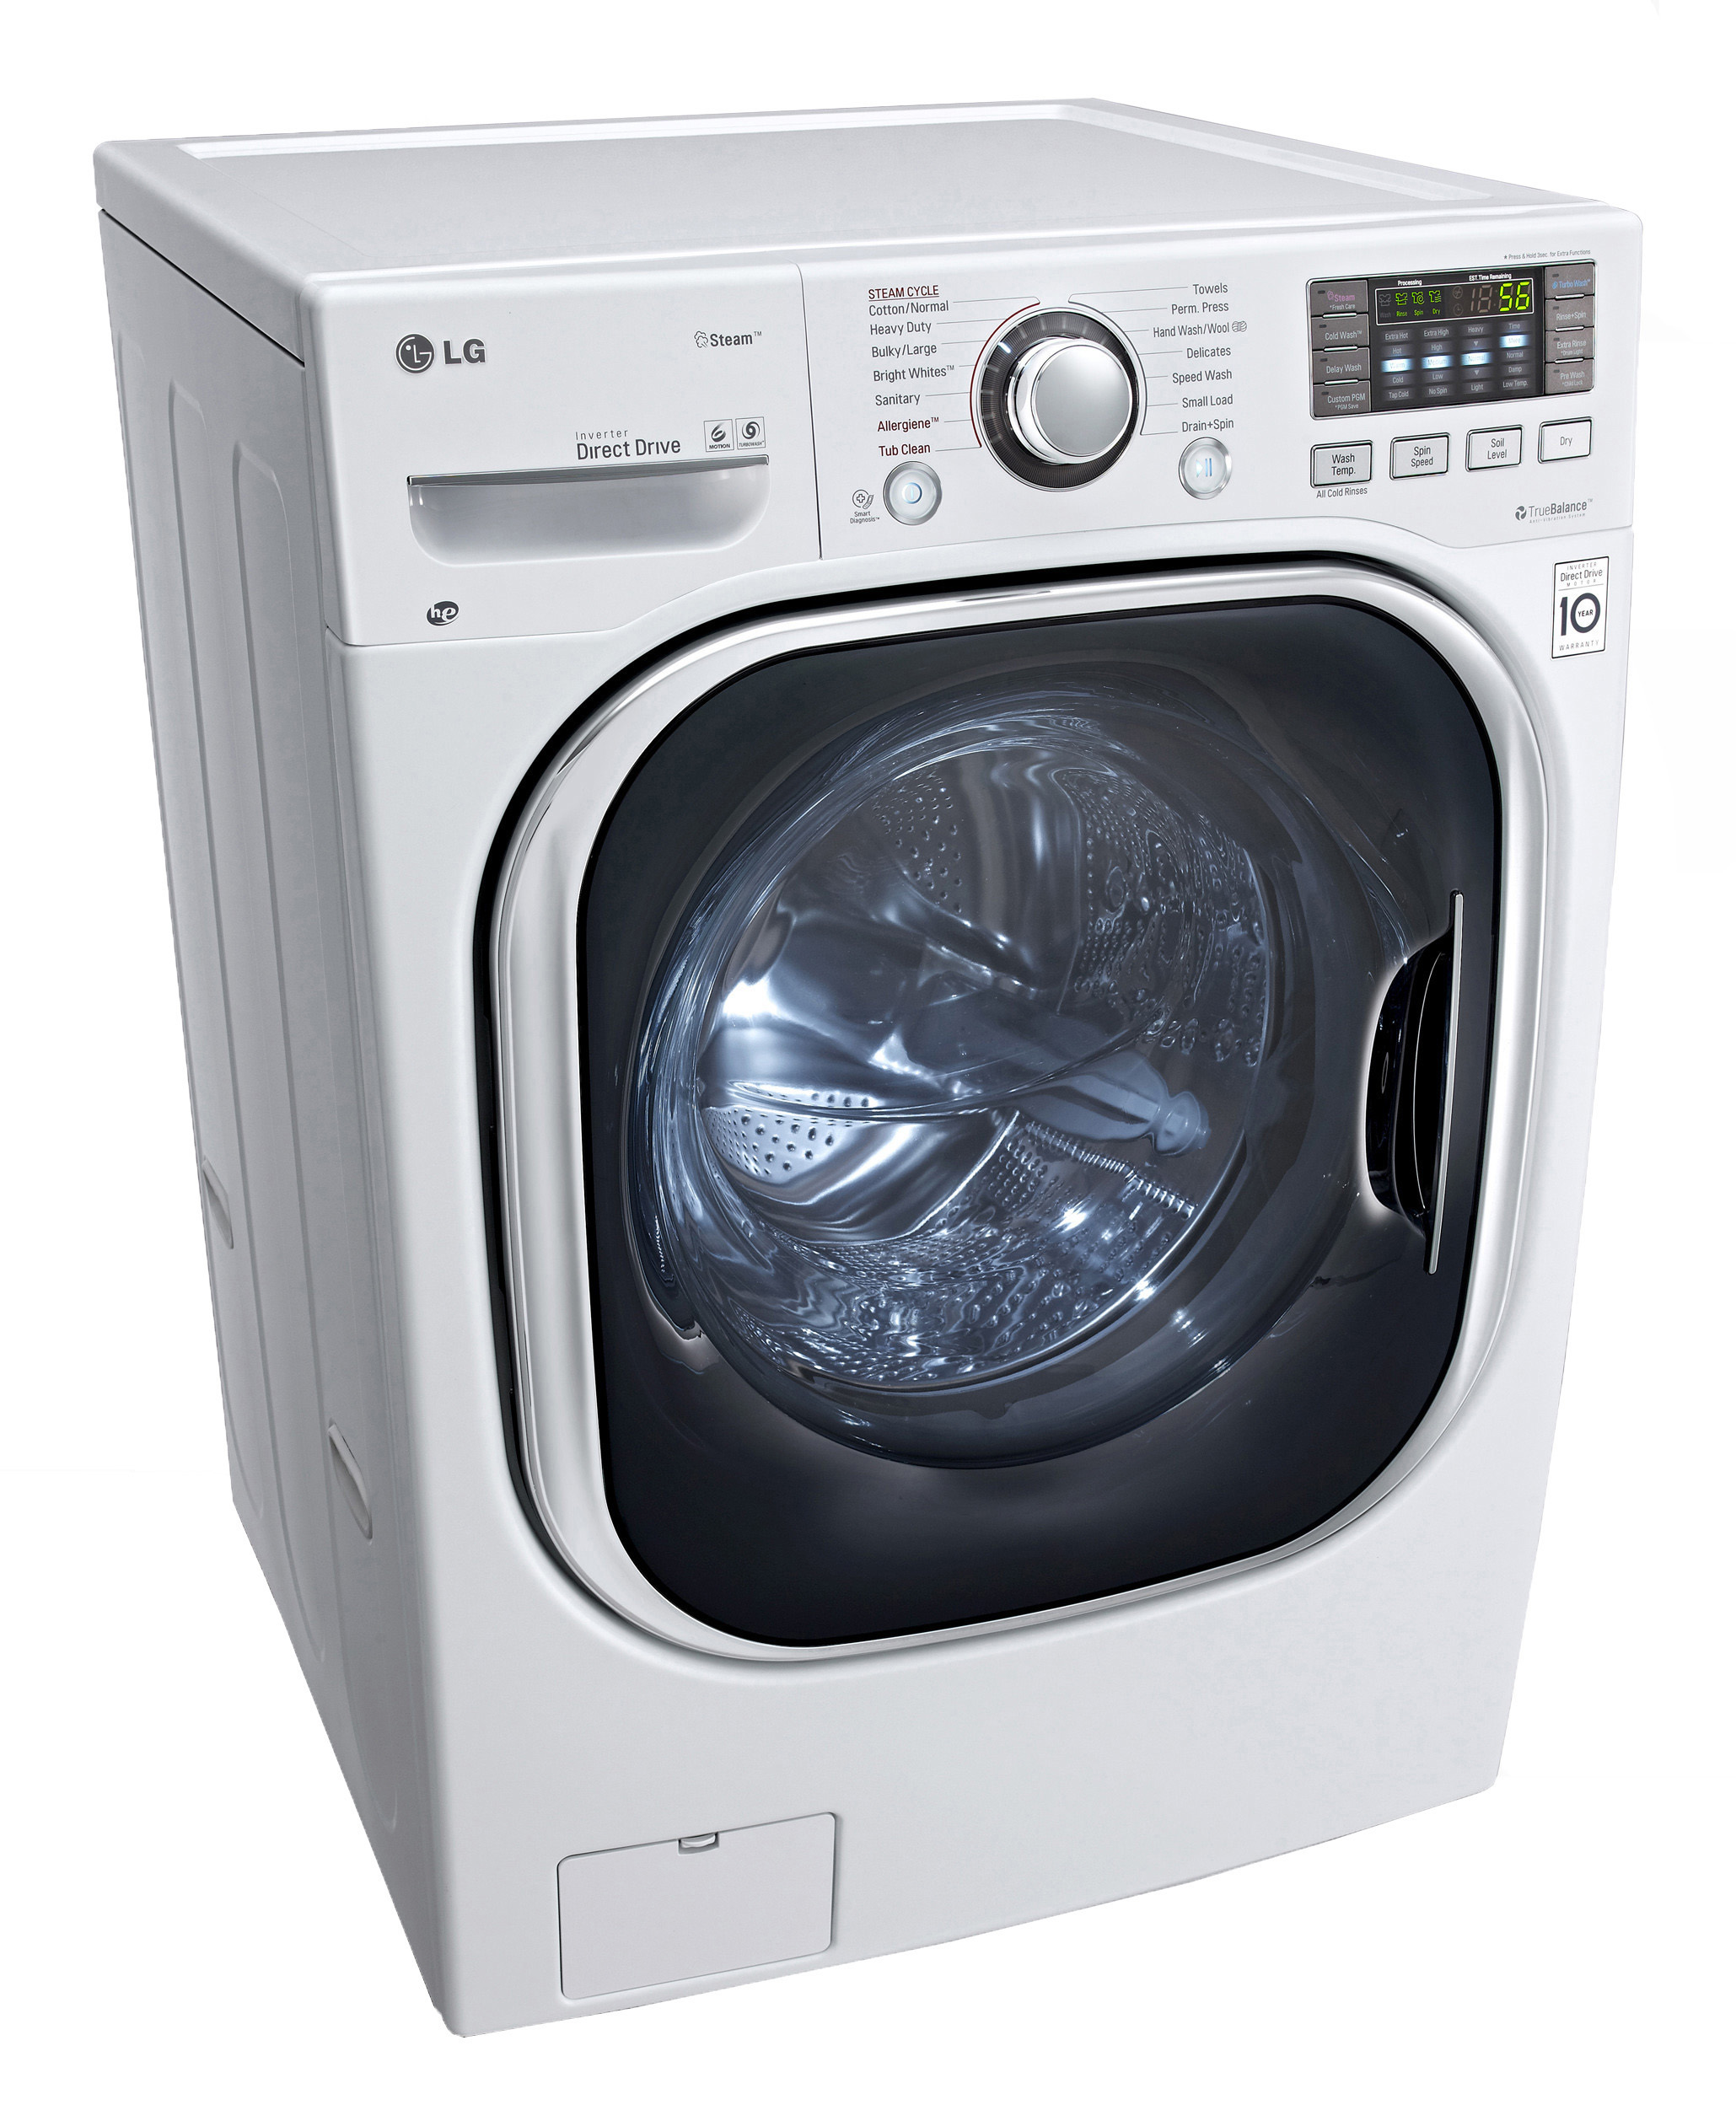 LG WM3997HWA 27 Full Size Ventless Washer Dryer Combo FJS